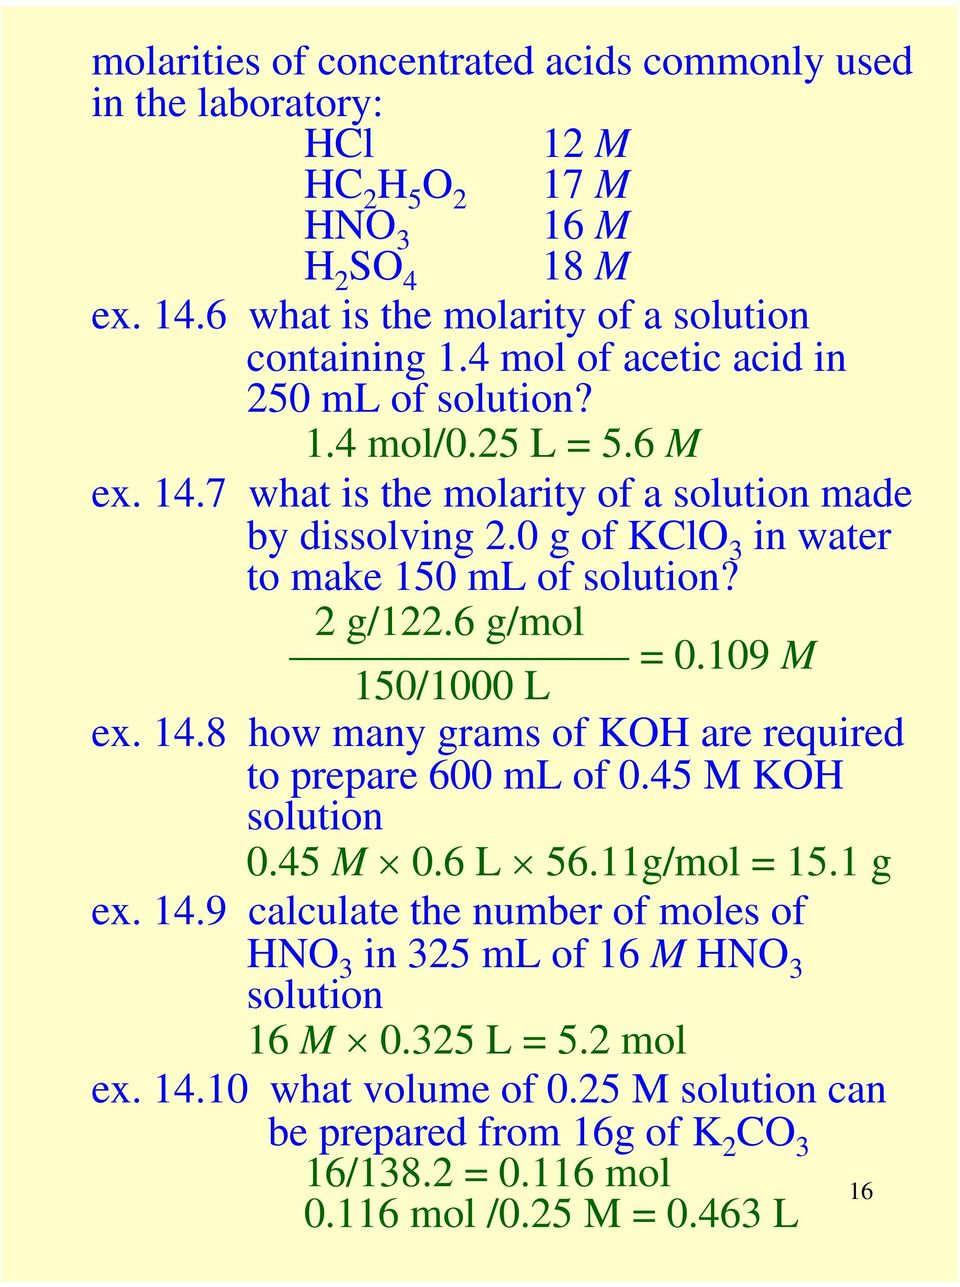 2 g/122.6 g/mol = 0.109 M 150/1000 L ex. 14.8 how many grams of KOH are required to prepare 600 ml of 0.45 M KOH solution 0.45 M 0.6 L 56.11g/mol = 15.1 g ex. 14.9 calculate the number of moles of HNO 3 in 325 ml of 16 M HNO 3 solution 16 M 0.